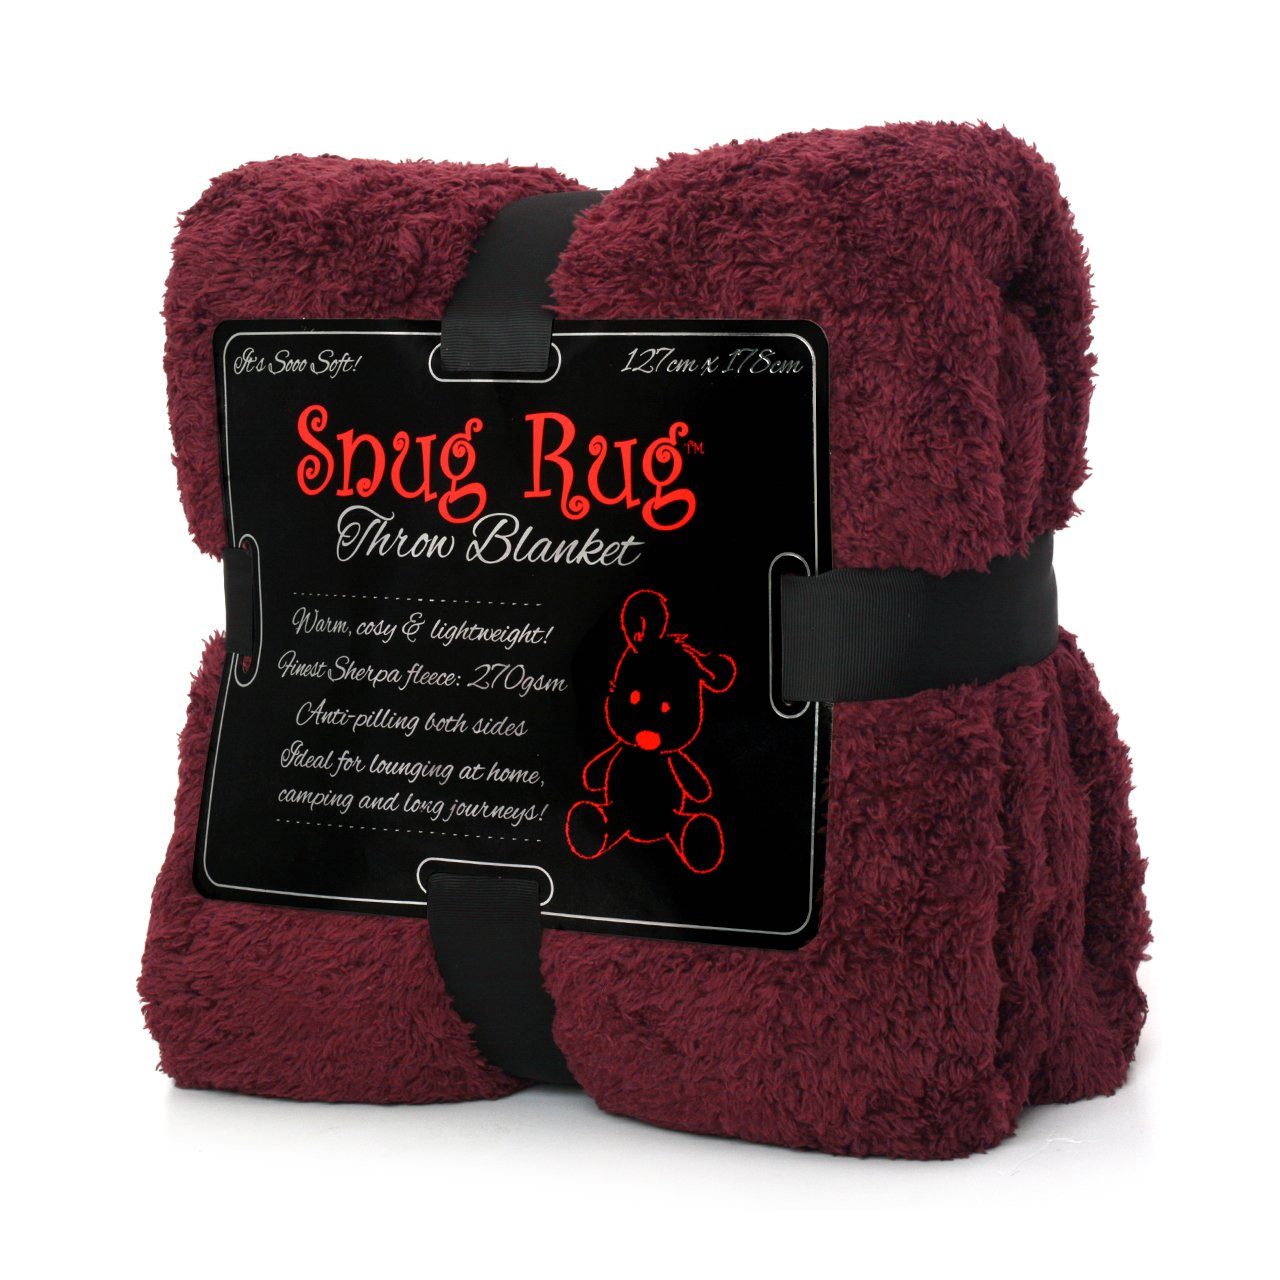 ギフト家International Snug Rug Special Edition LuxuryシェルパフリースSnug Rug Throwブランケット、Mulberryレッド、127 x 178 cm (50 cm x 70 cm) B01BFI8G7Y